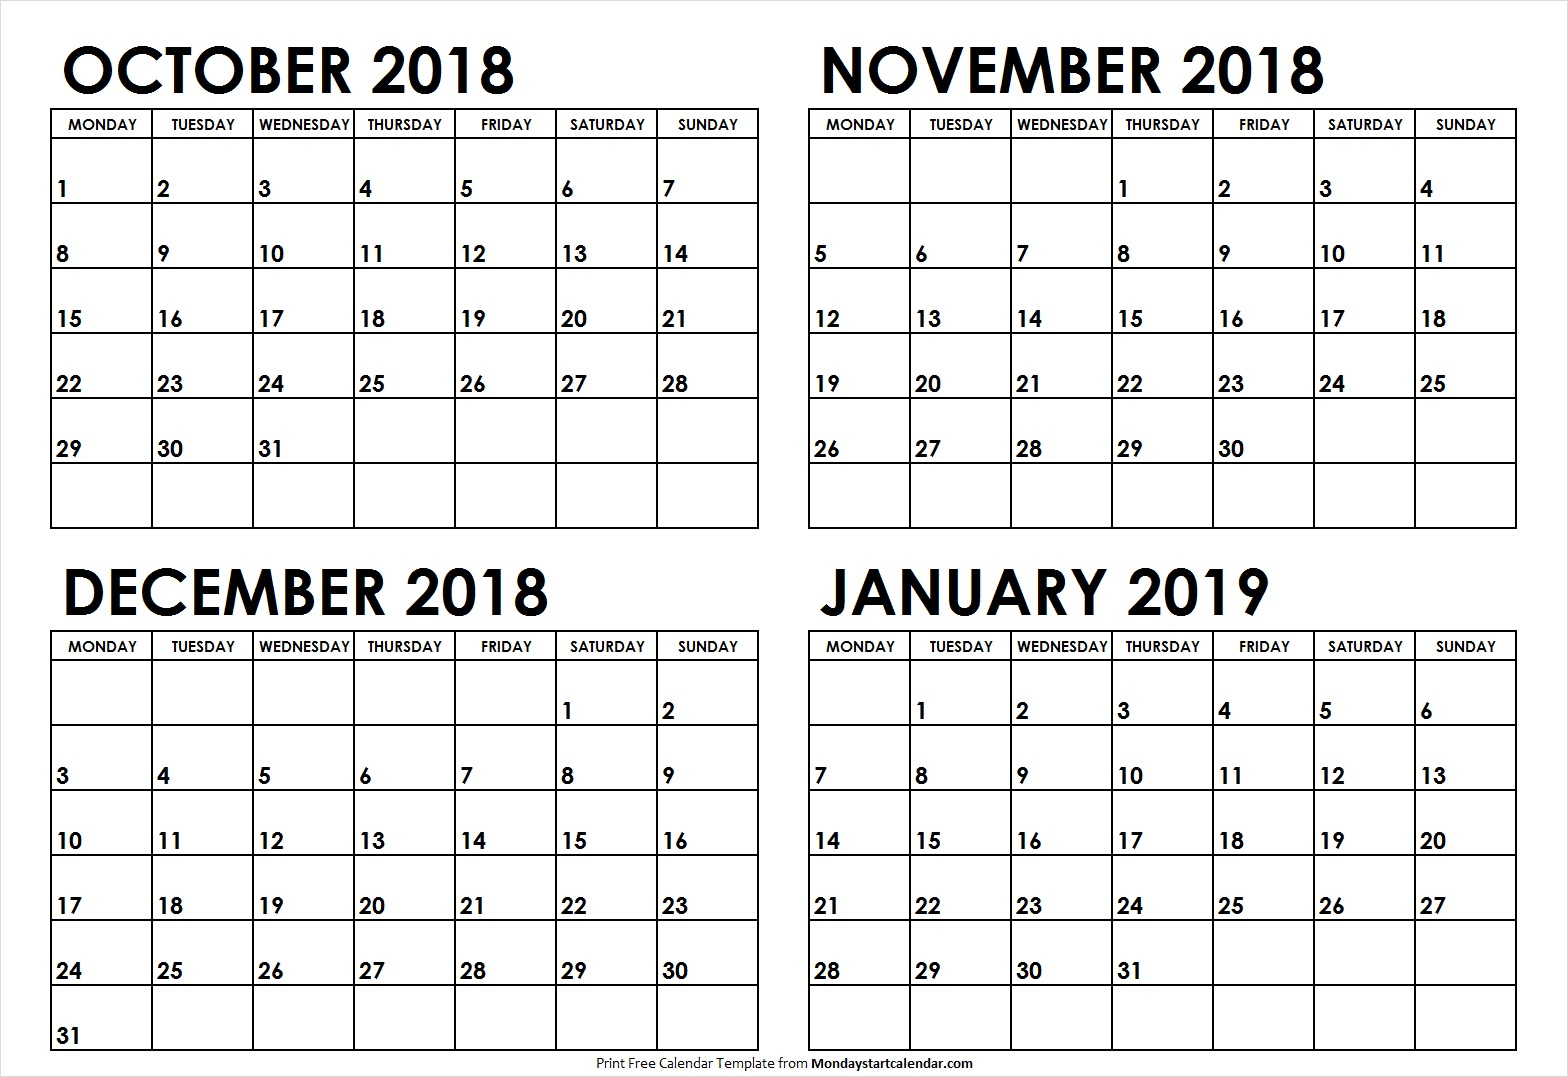 October November December 2018 January 2019 Calendar Template intended for November December January Calendar